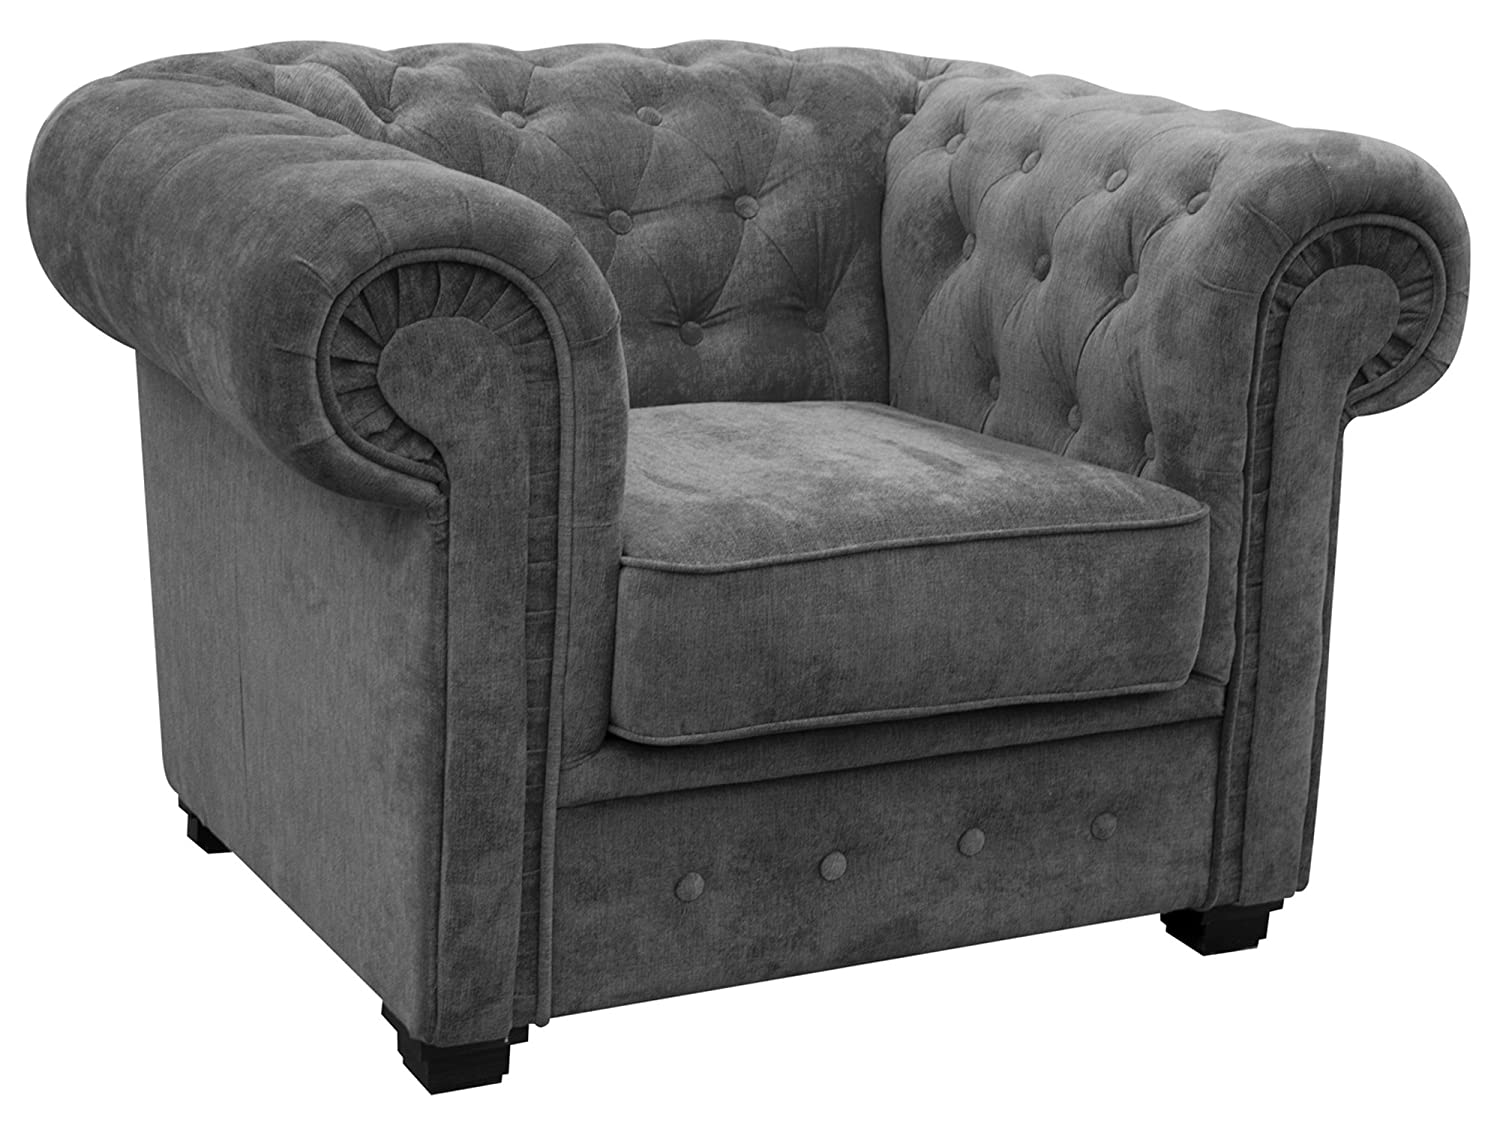 Armchair Chesterfield Style Corner Sofa Set 3+2 Seater Armchair Grey Fabric (3 Seater)